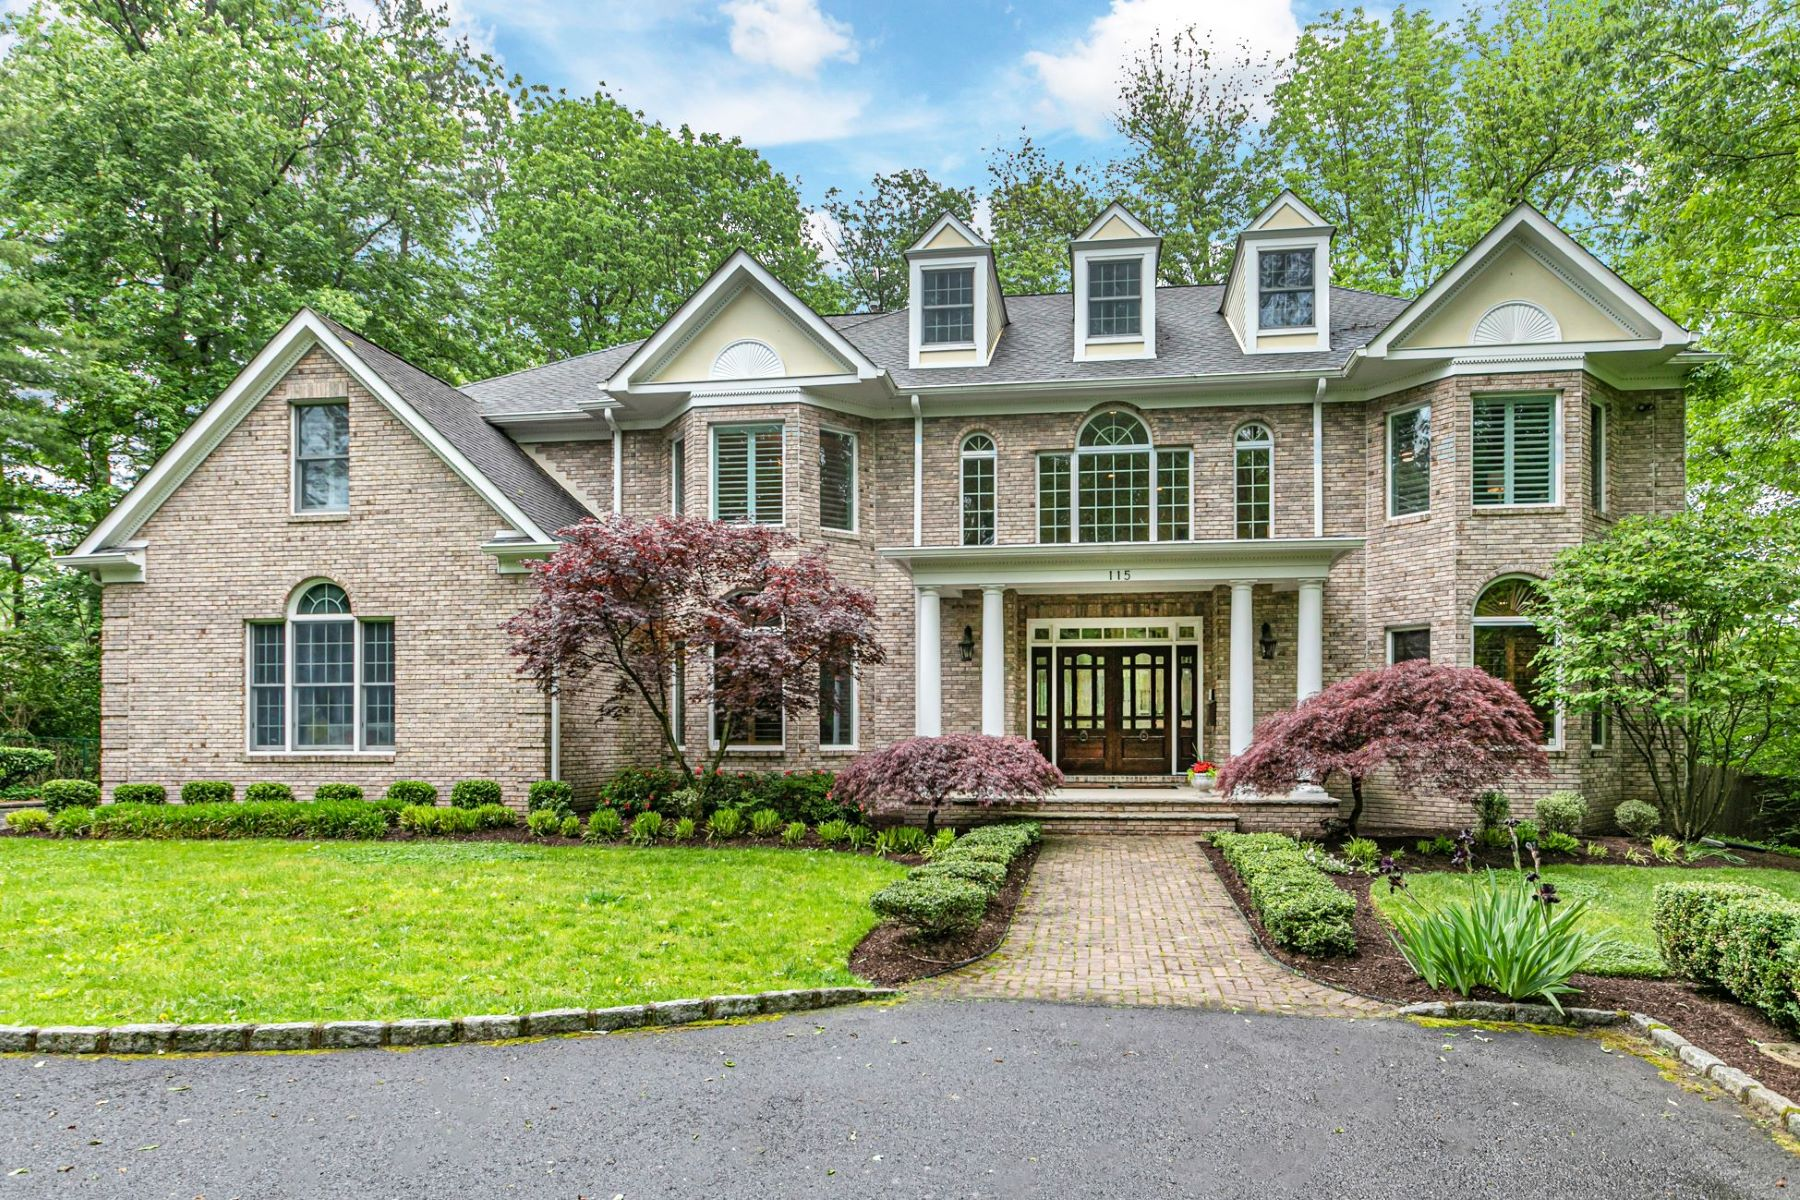 Single Family Homes for Sale at As Peaceful as it is Pristine 115 Lafayette Road, Princeton, New Jersey 08540 United States